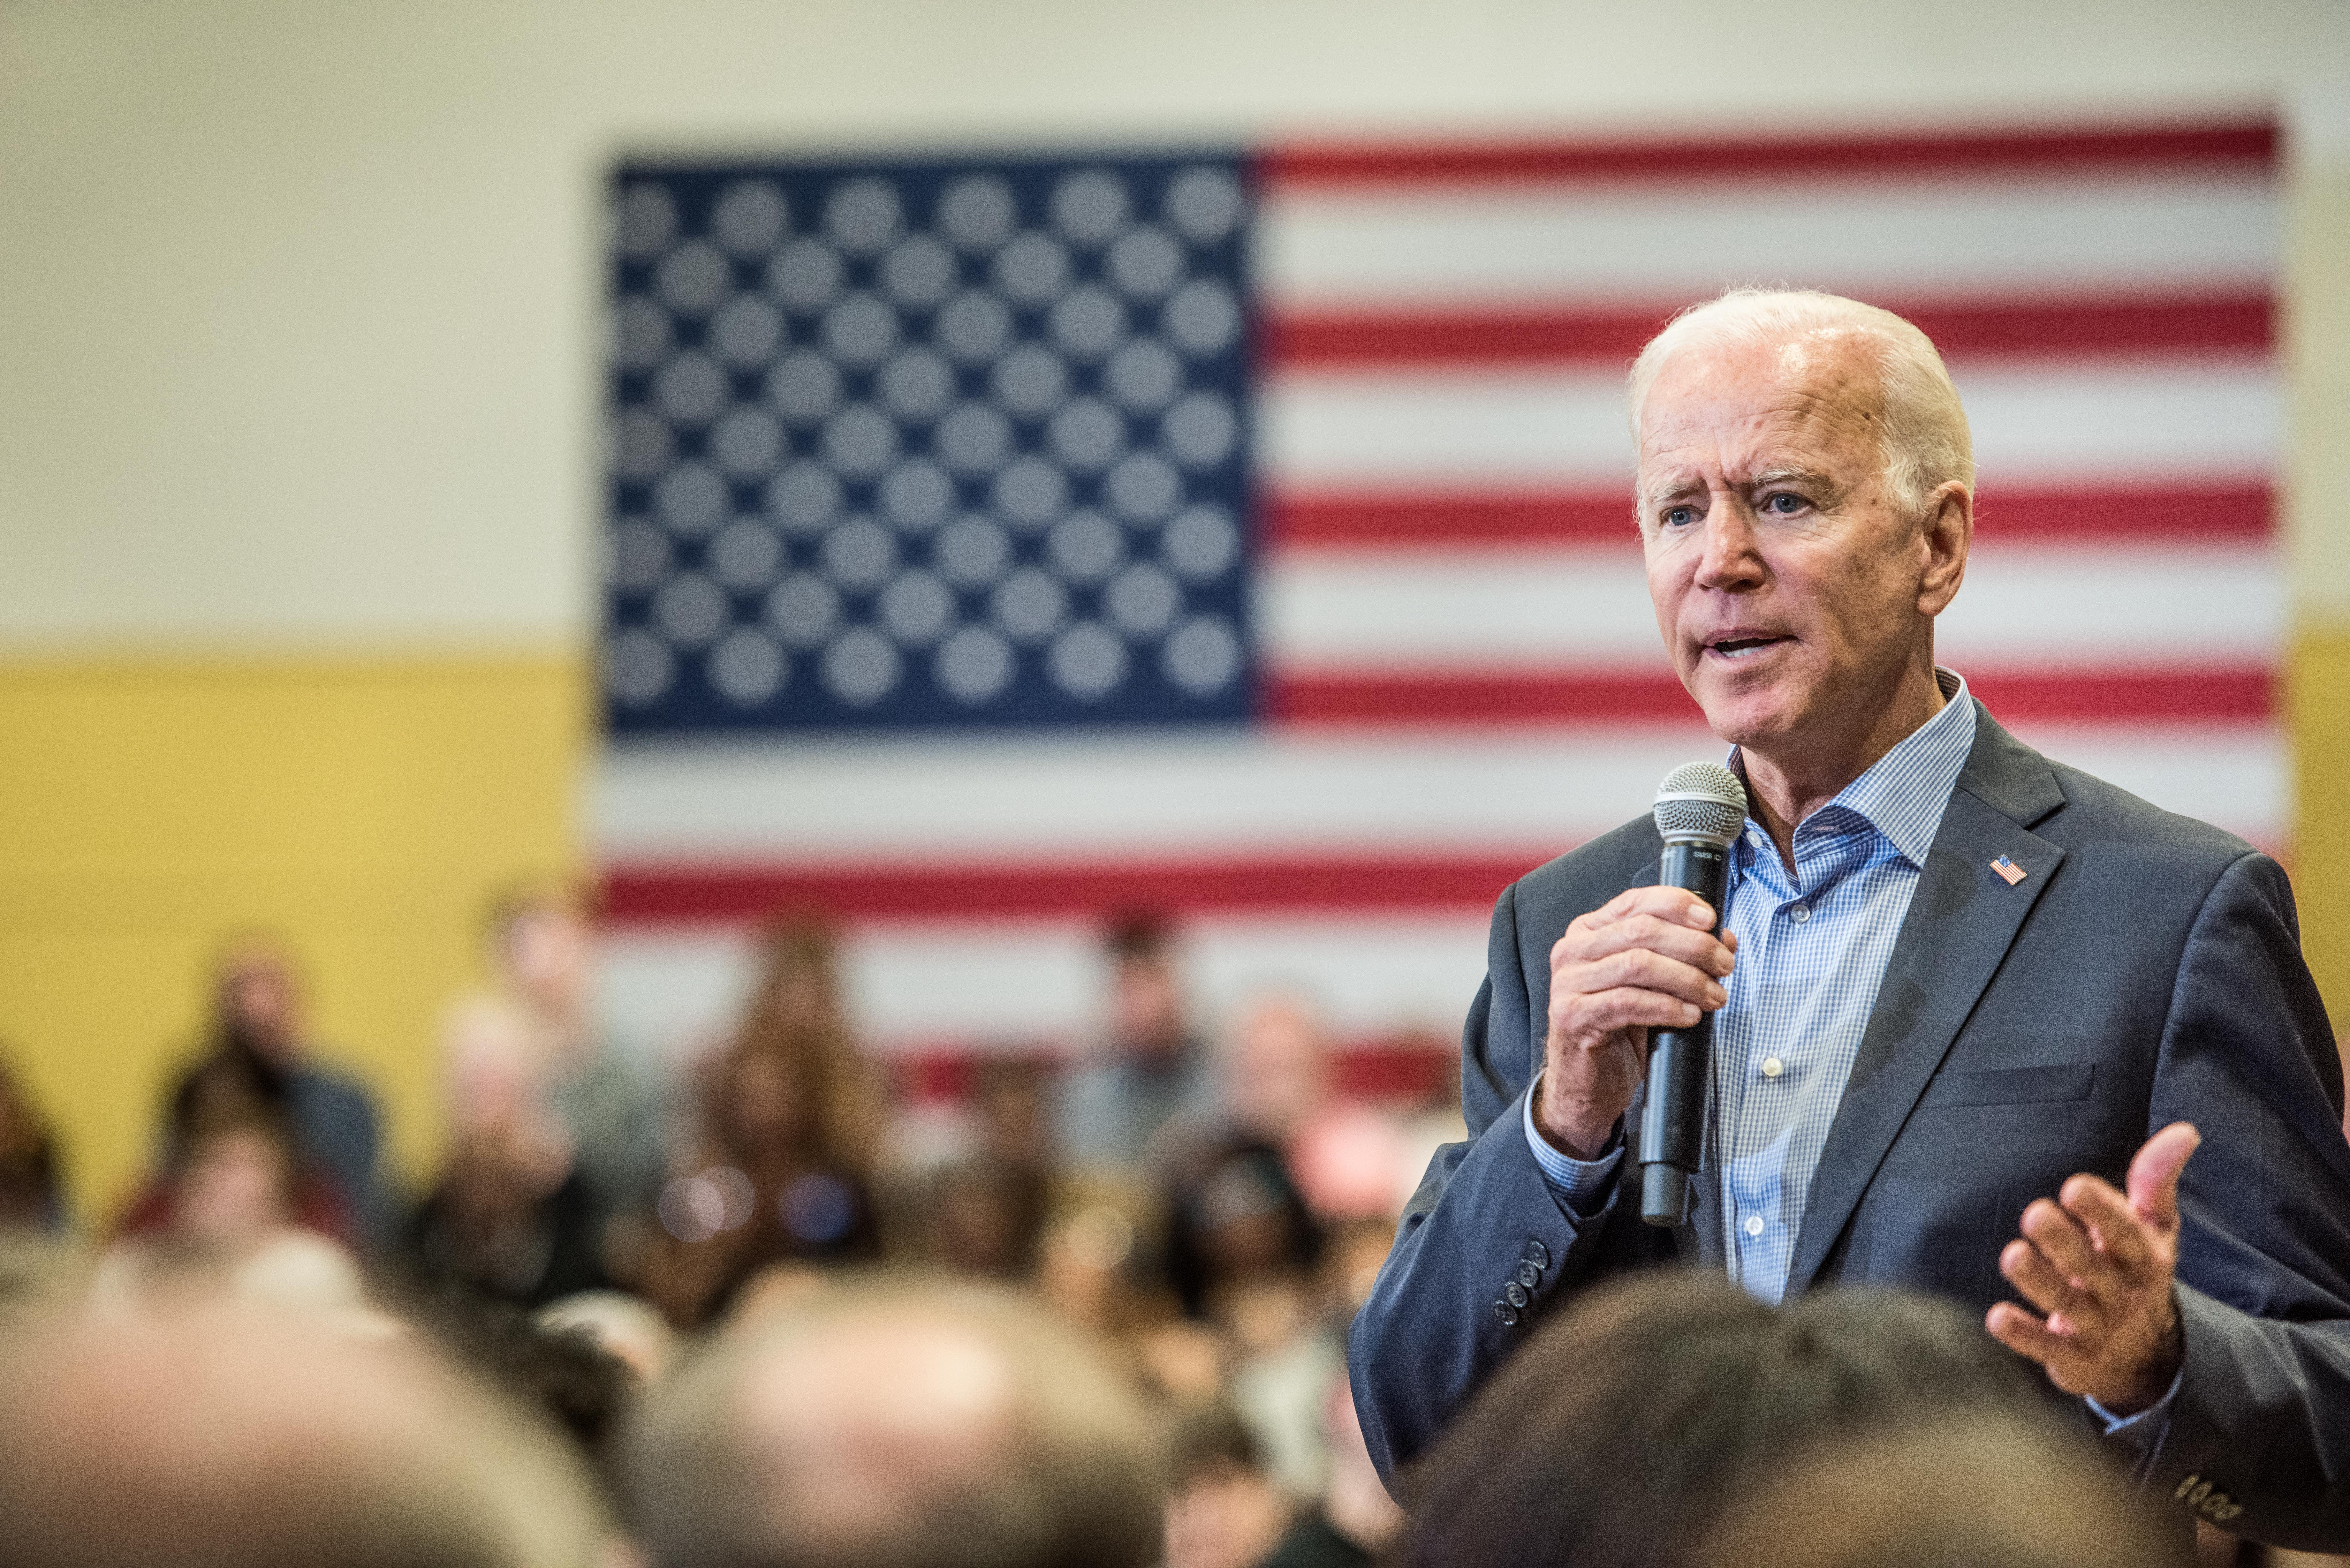 Joe Biden speaks into a microphone in front of a crowd with an American flag in the background.